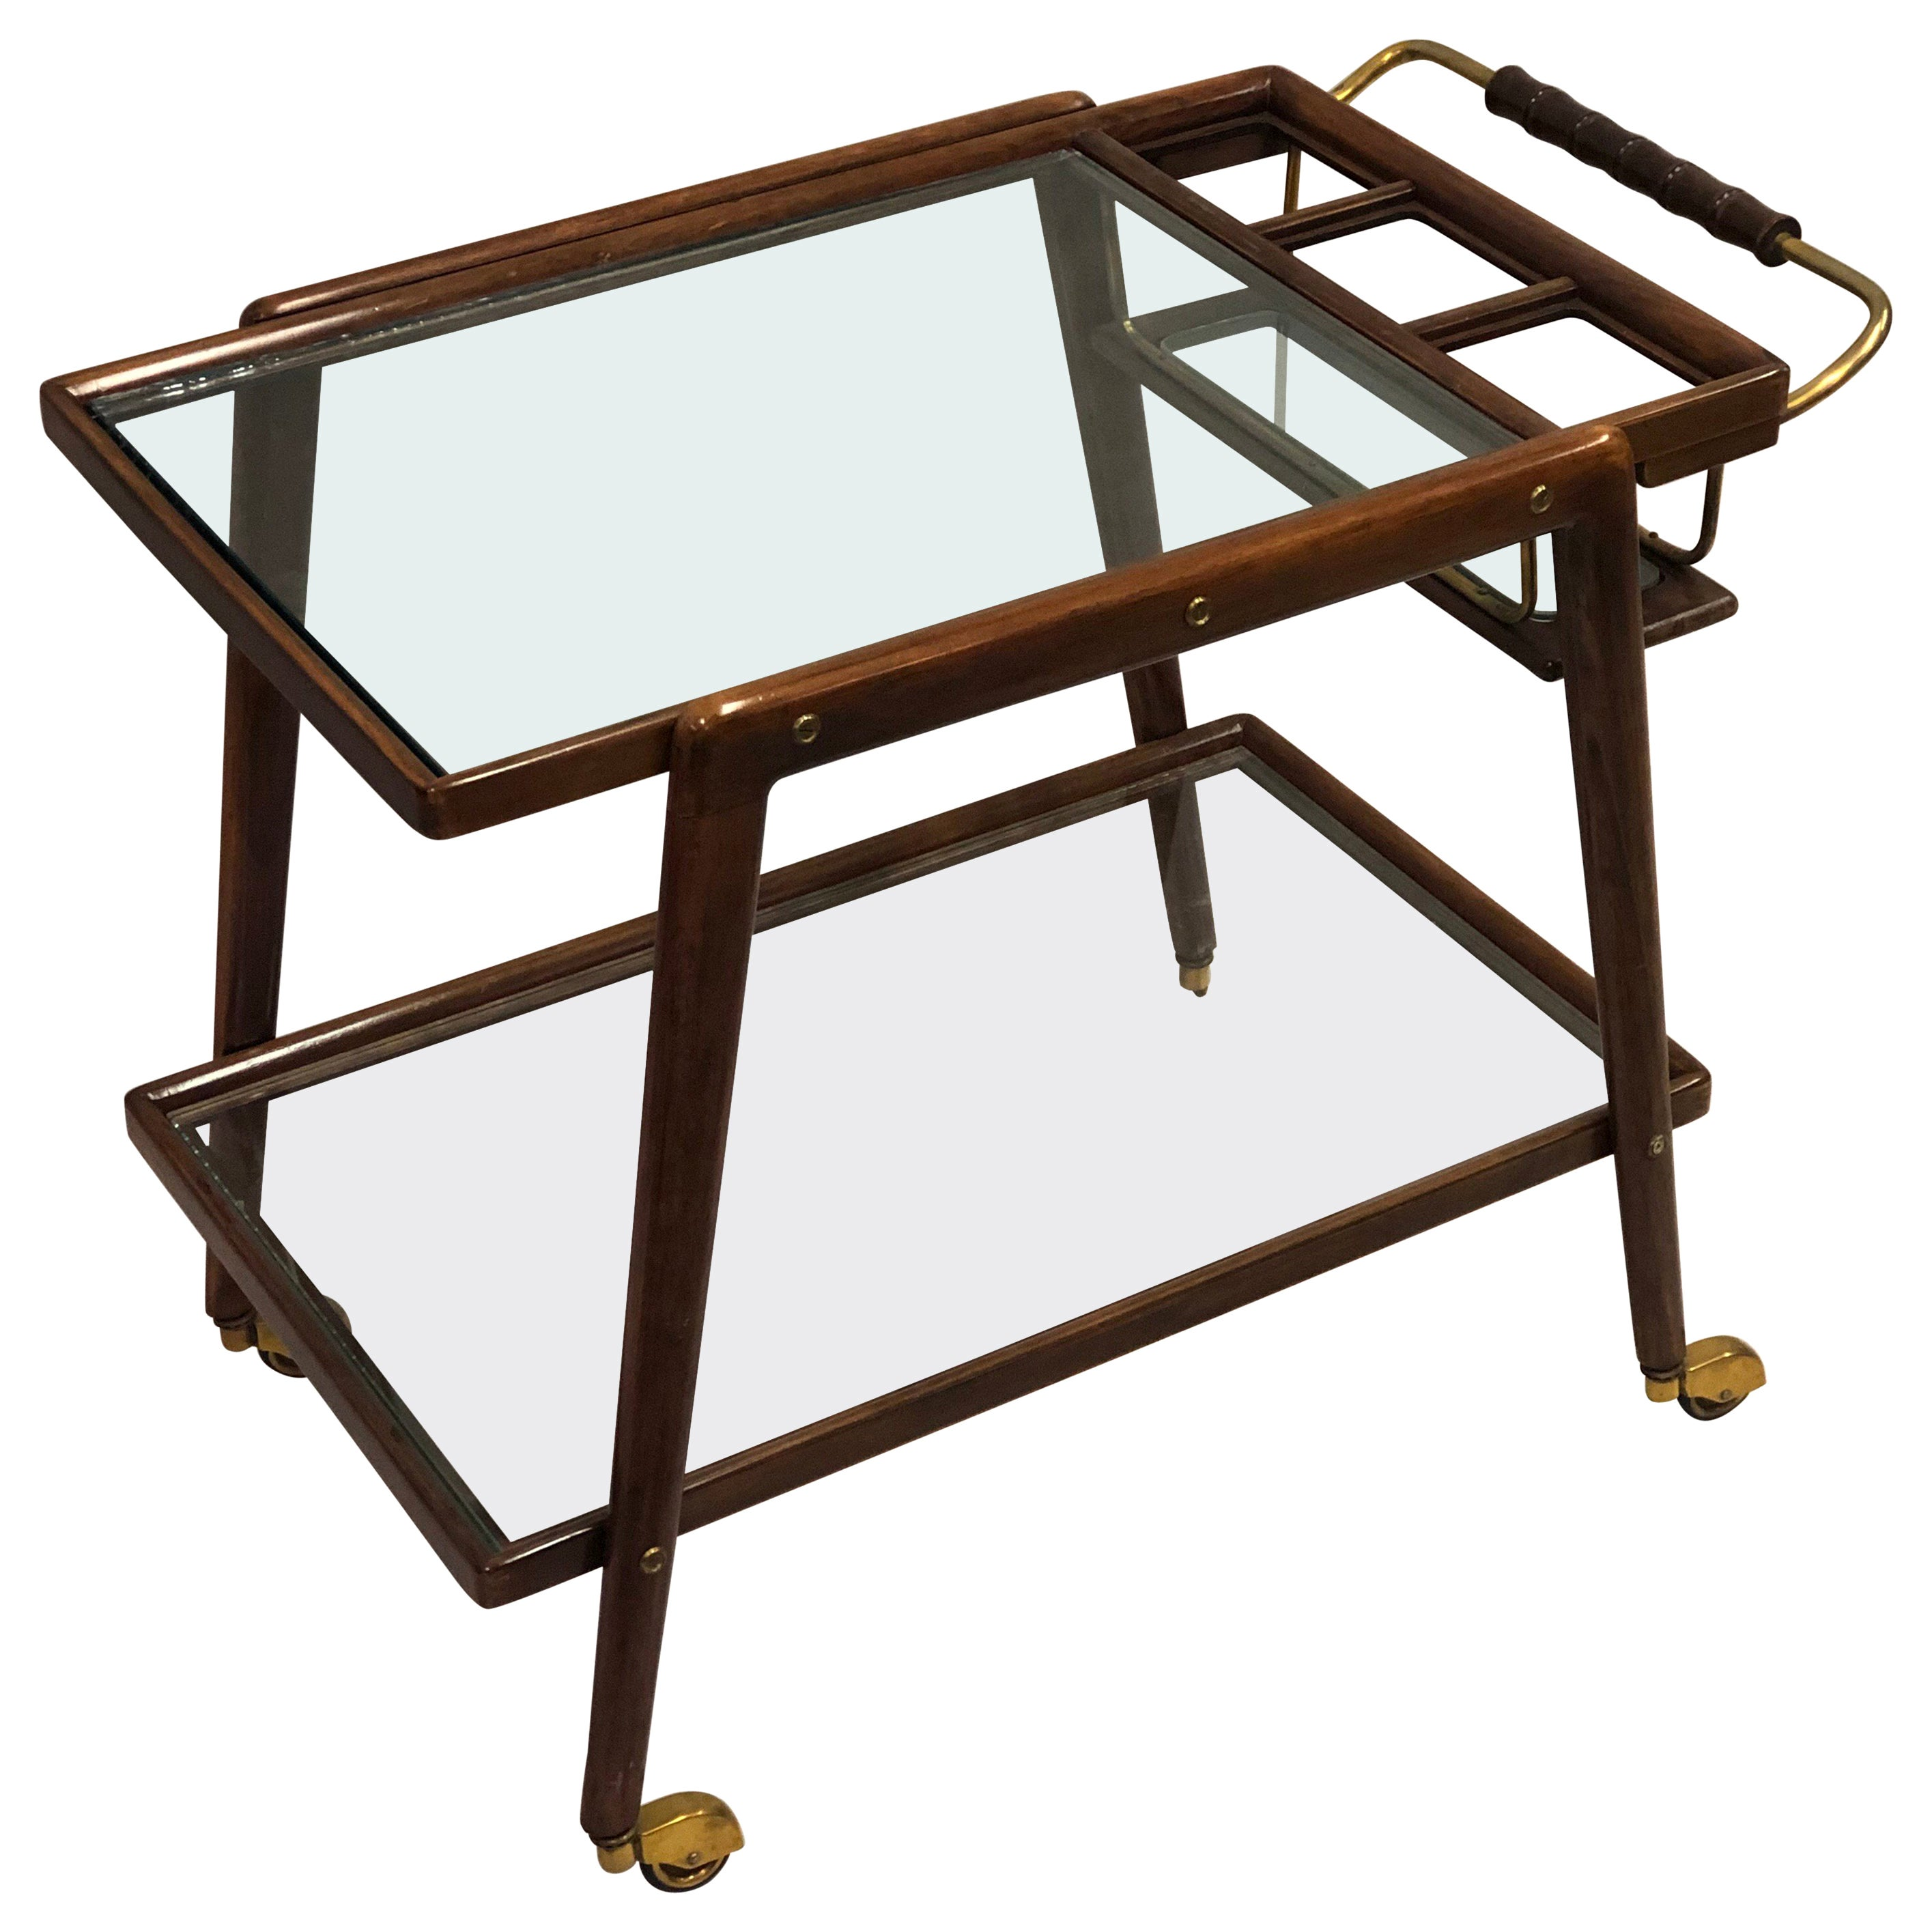 Italian Mid-Century Modern Walnut and Glass Bar Cart by Cesare Lacca